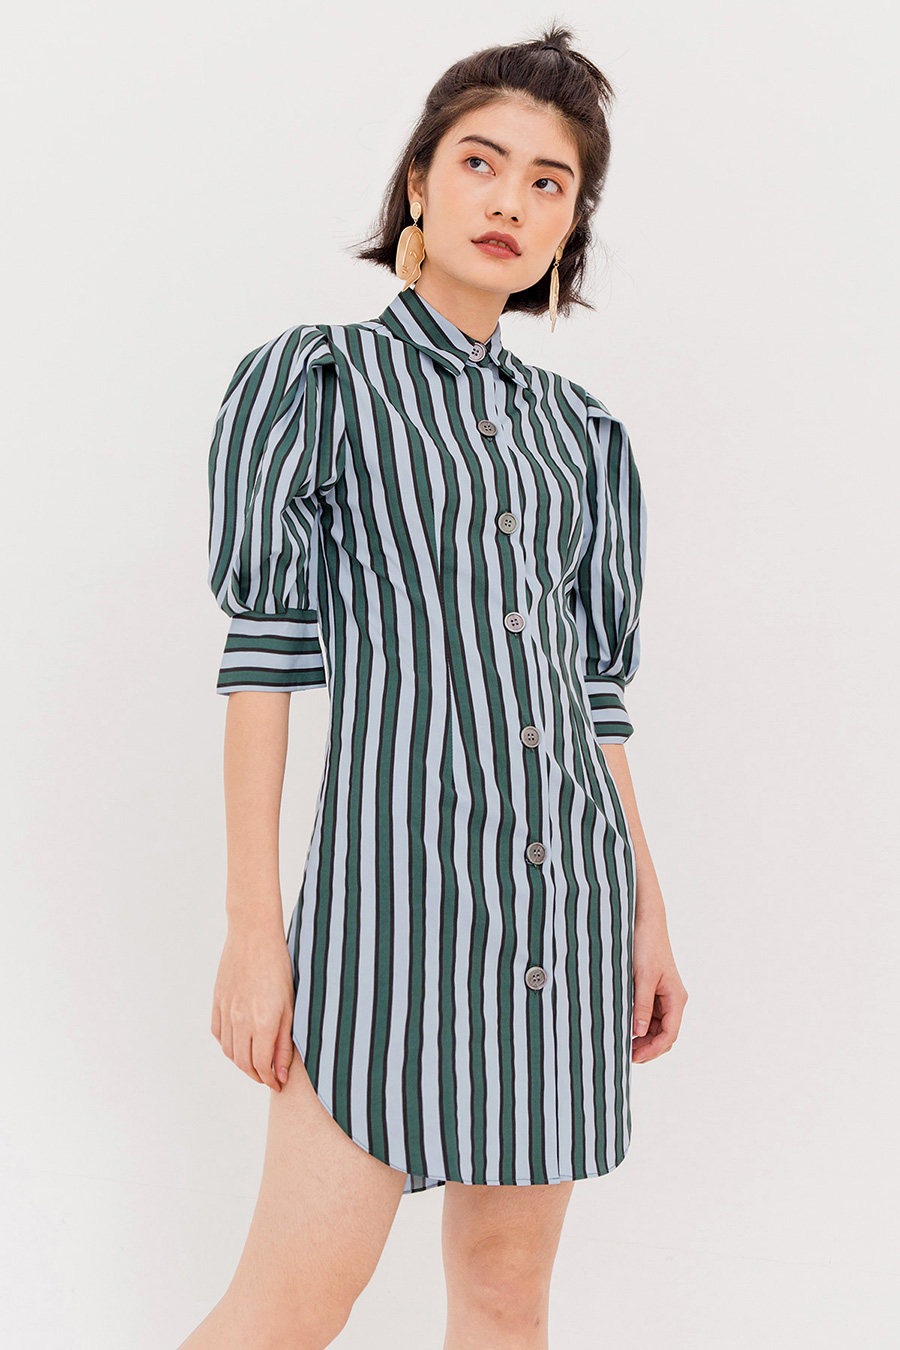 *SALE* GIA STRIPE TUNIC DRESS - BLUE GREEN